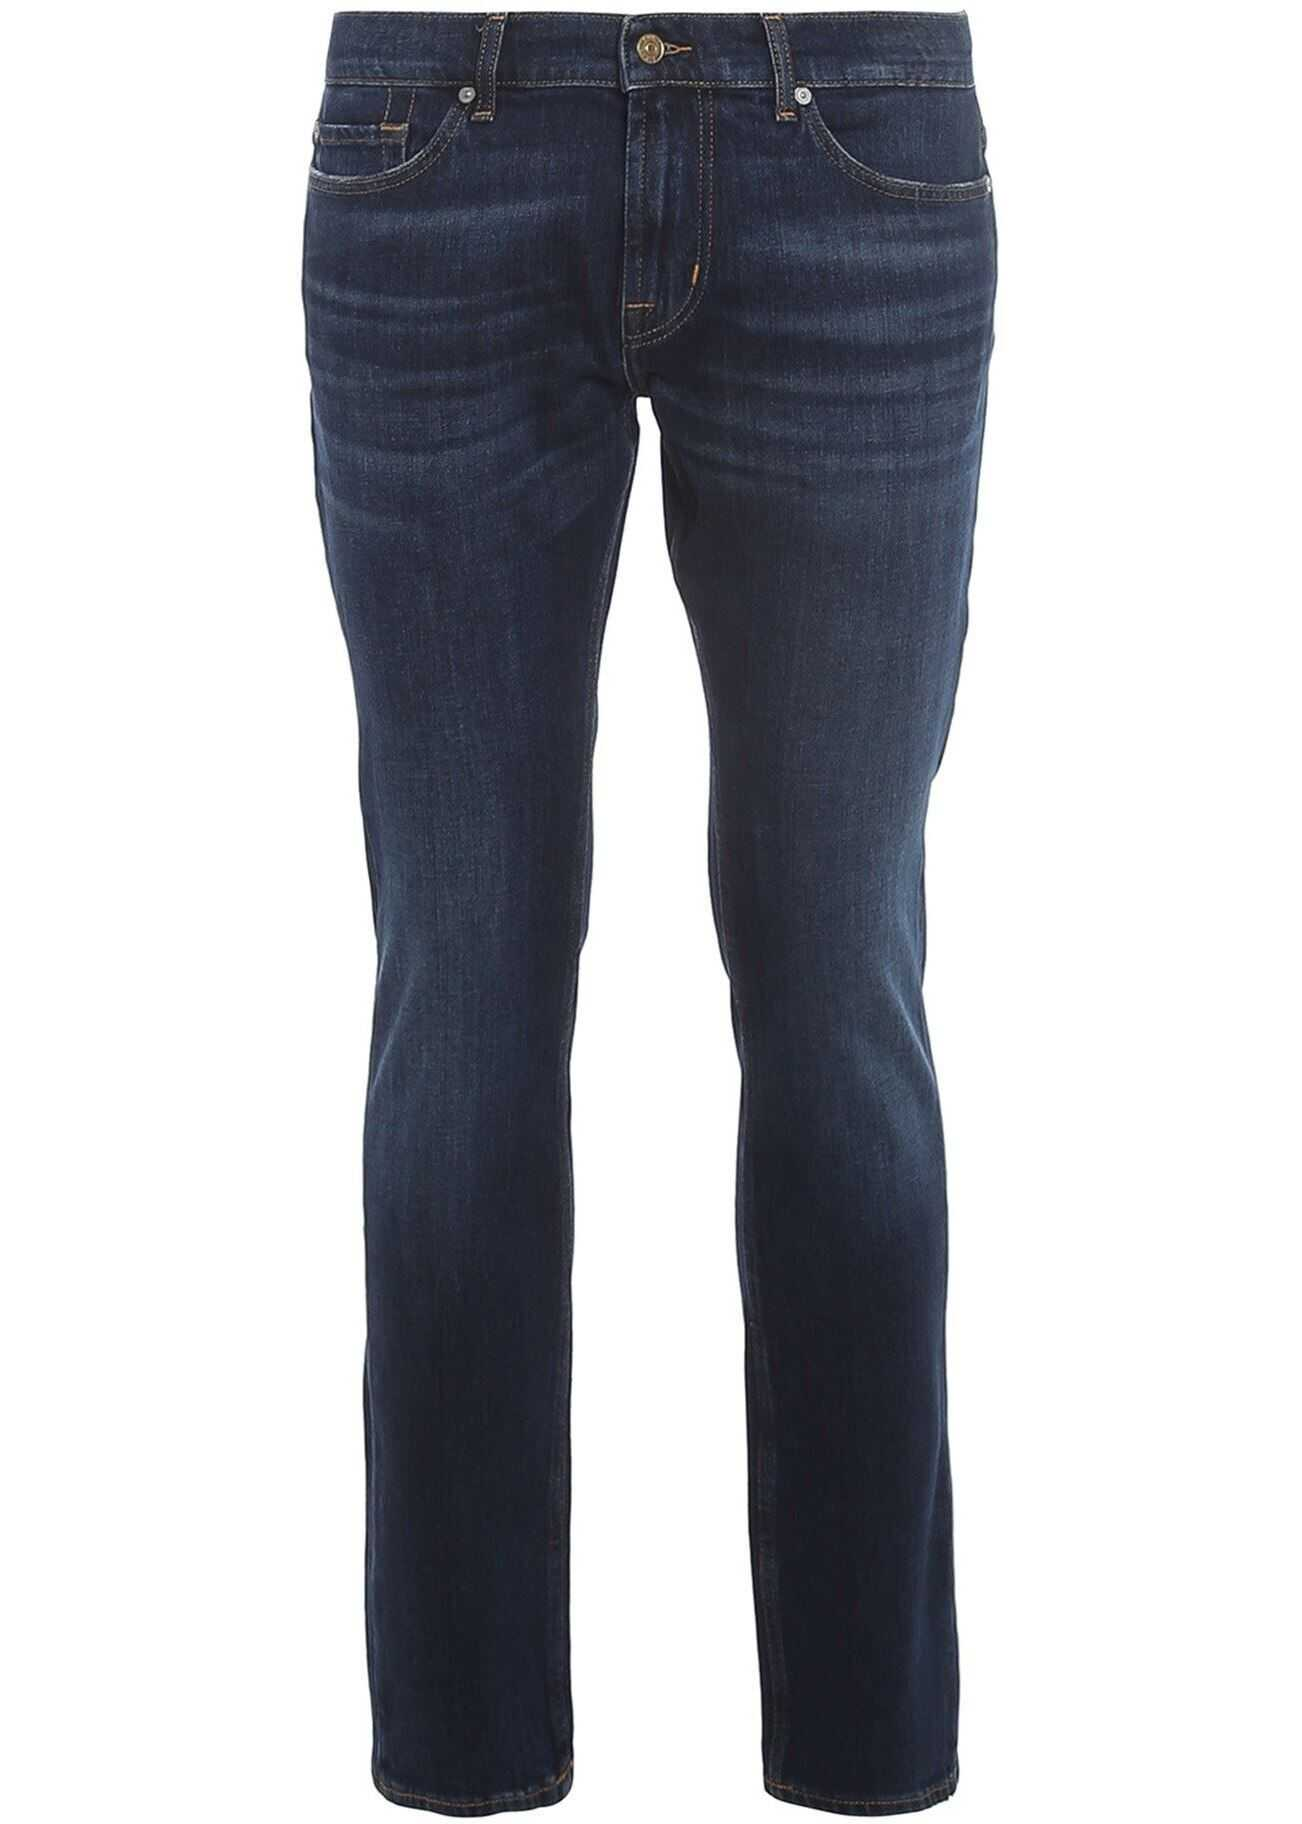 7 For All Mankind Ronnie Dorado Jeans In Blue Blue imagine